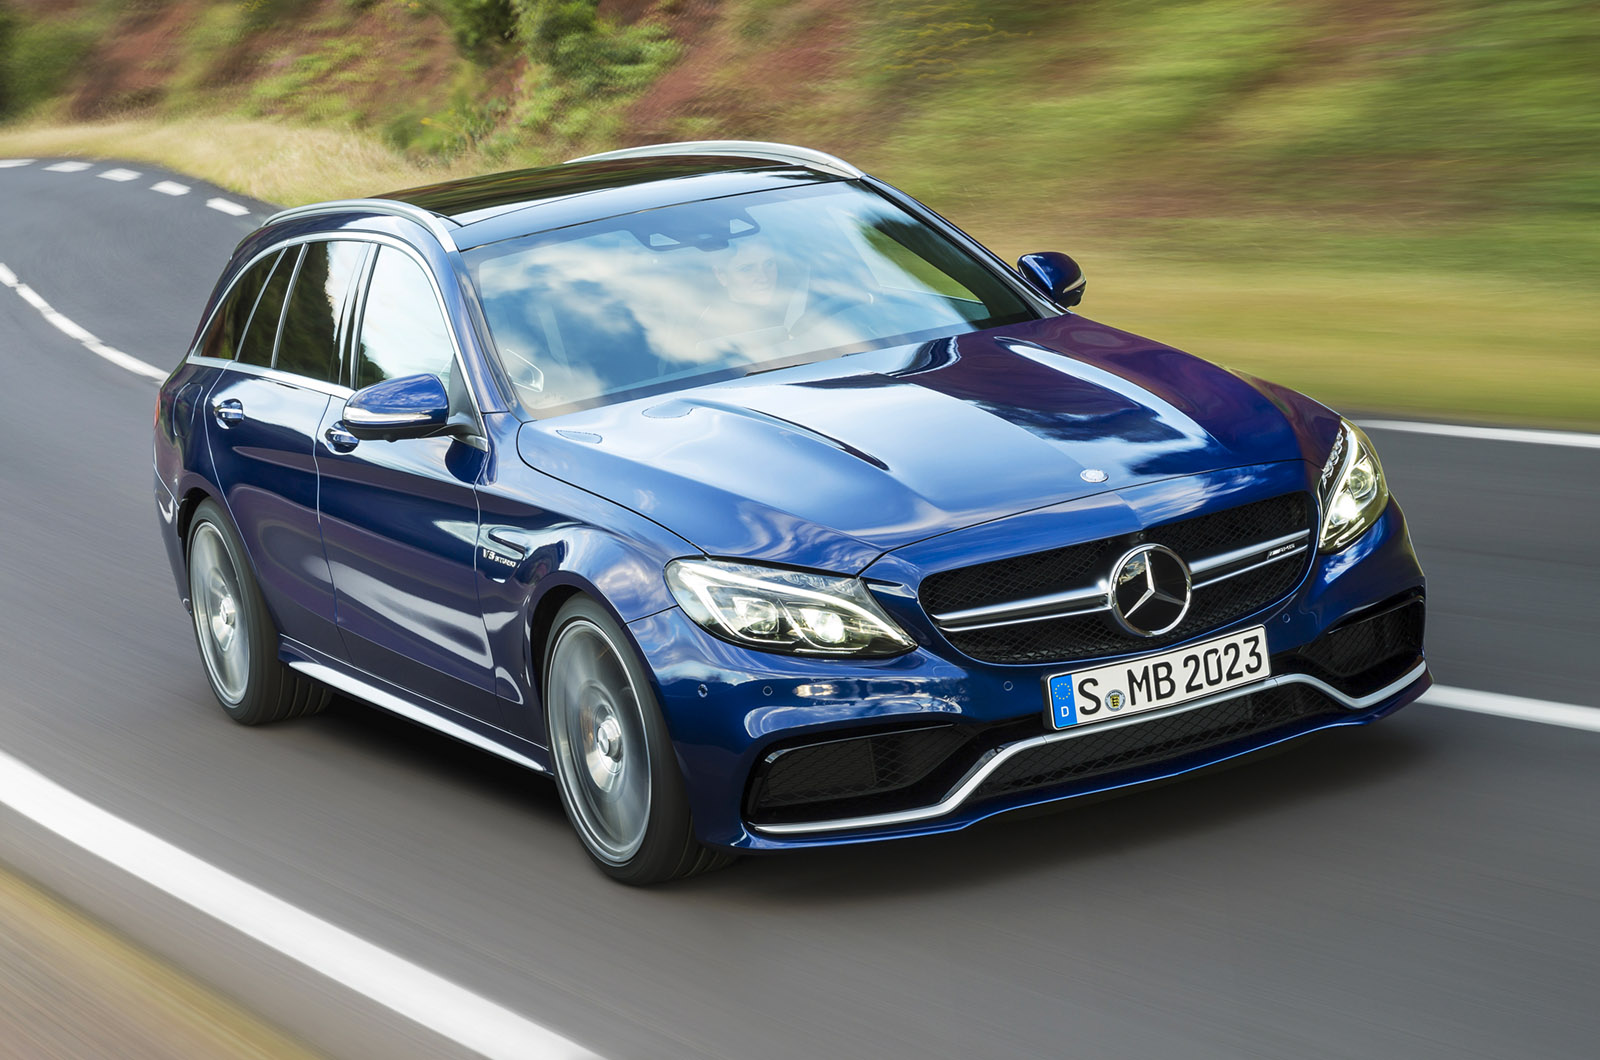 W205 Mercedes-Benz C 63 AMG and C 63 AMG S first photos and details – 700 Nm of torque! Image 274839